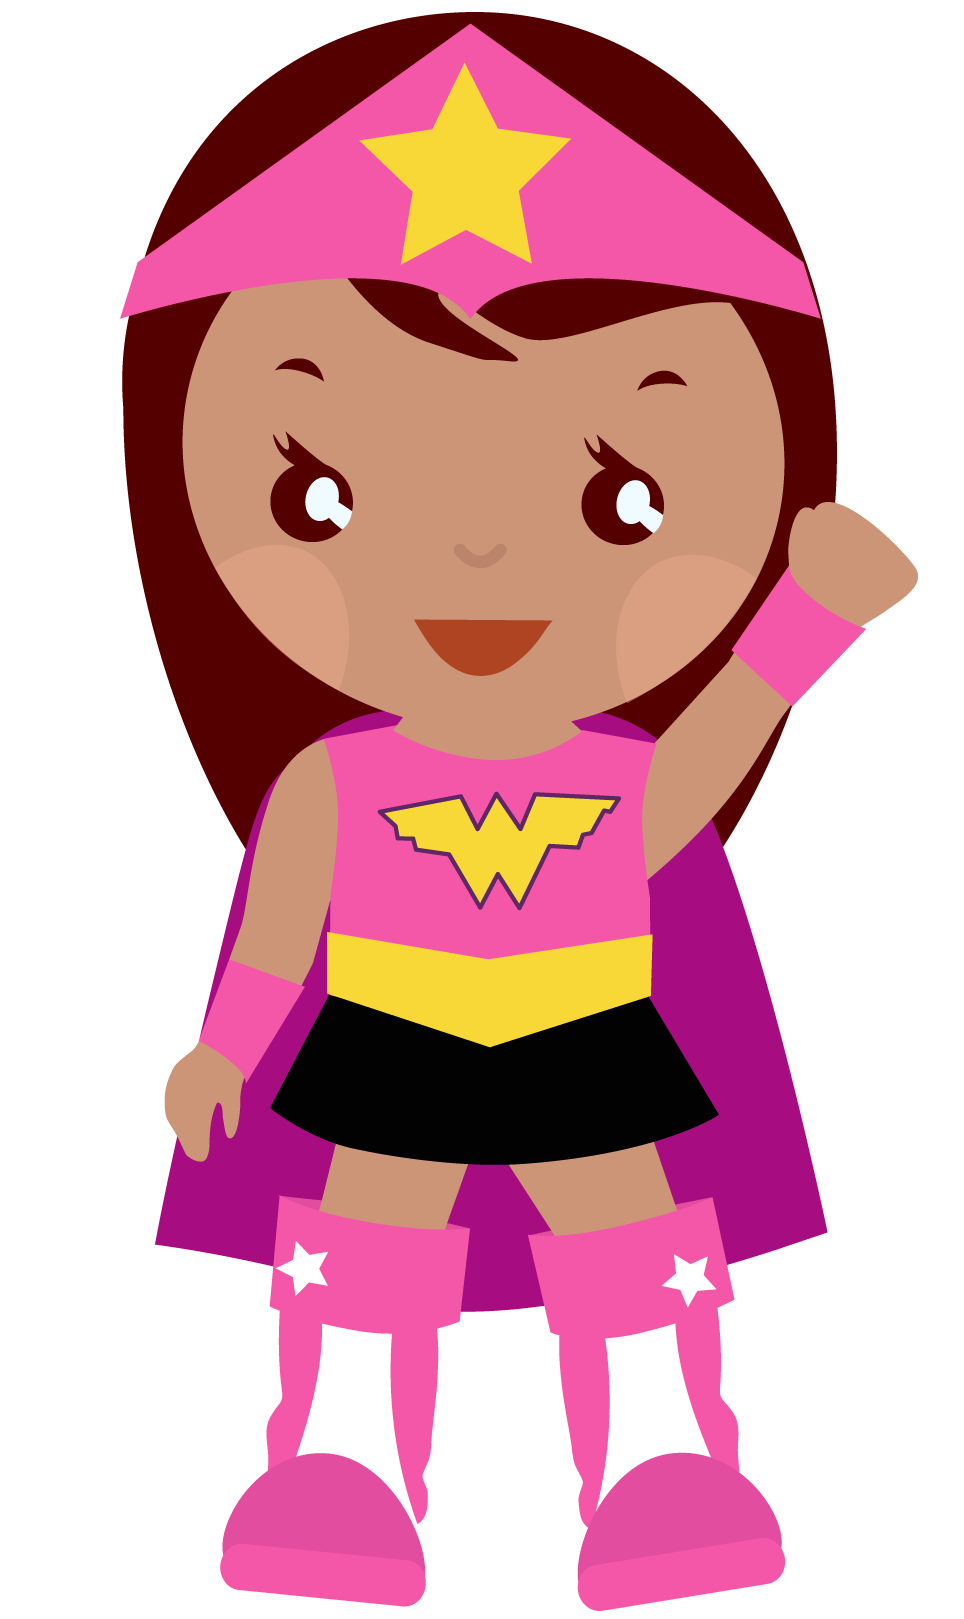 Cartoon Superhero Gallery Free Clipart Images.